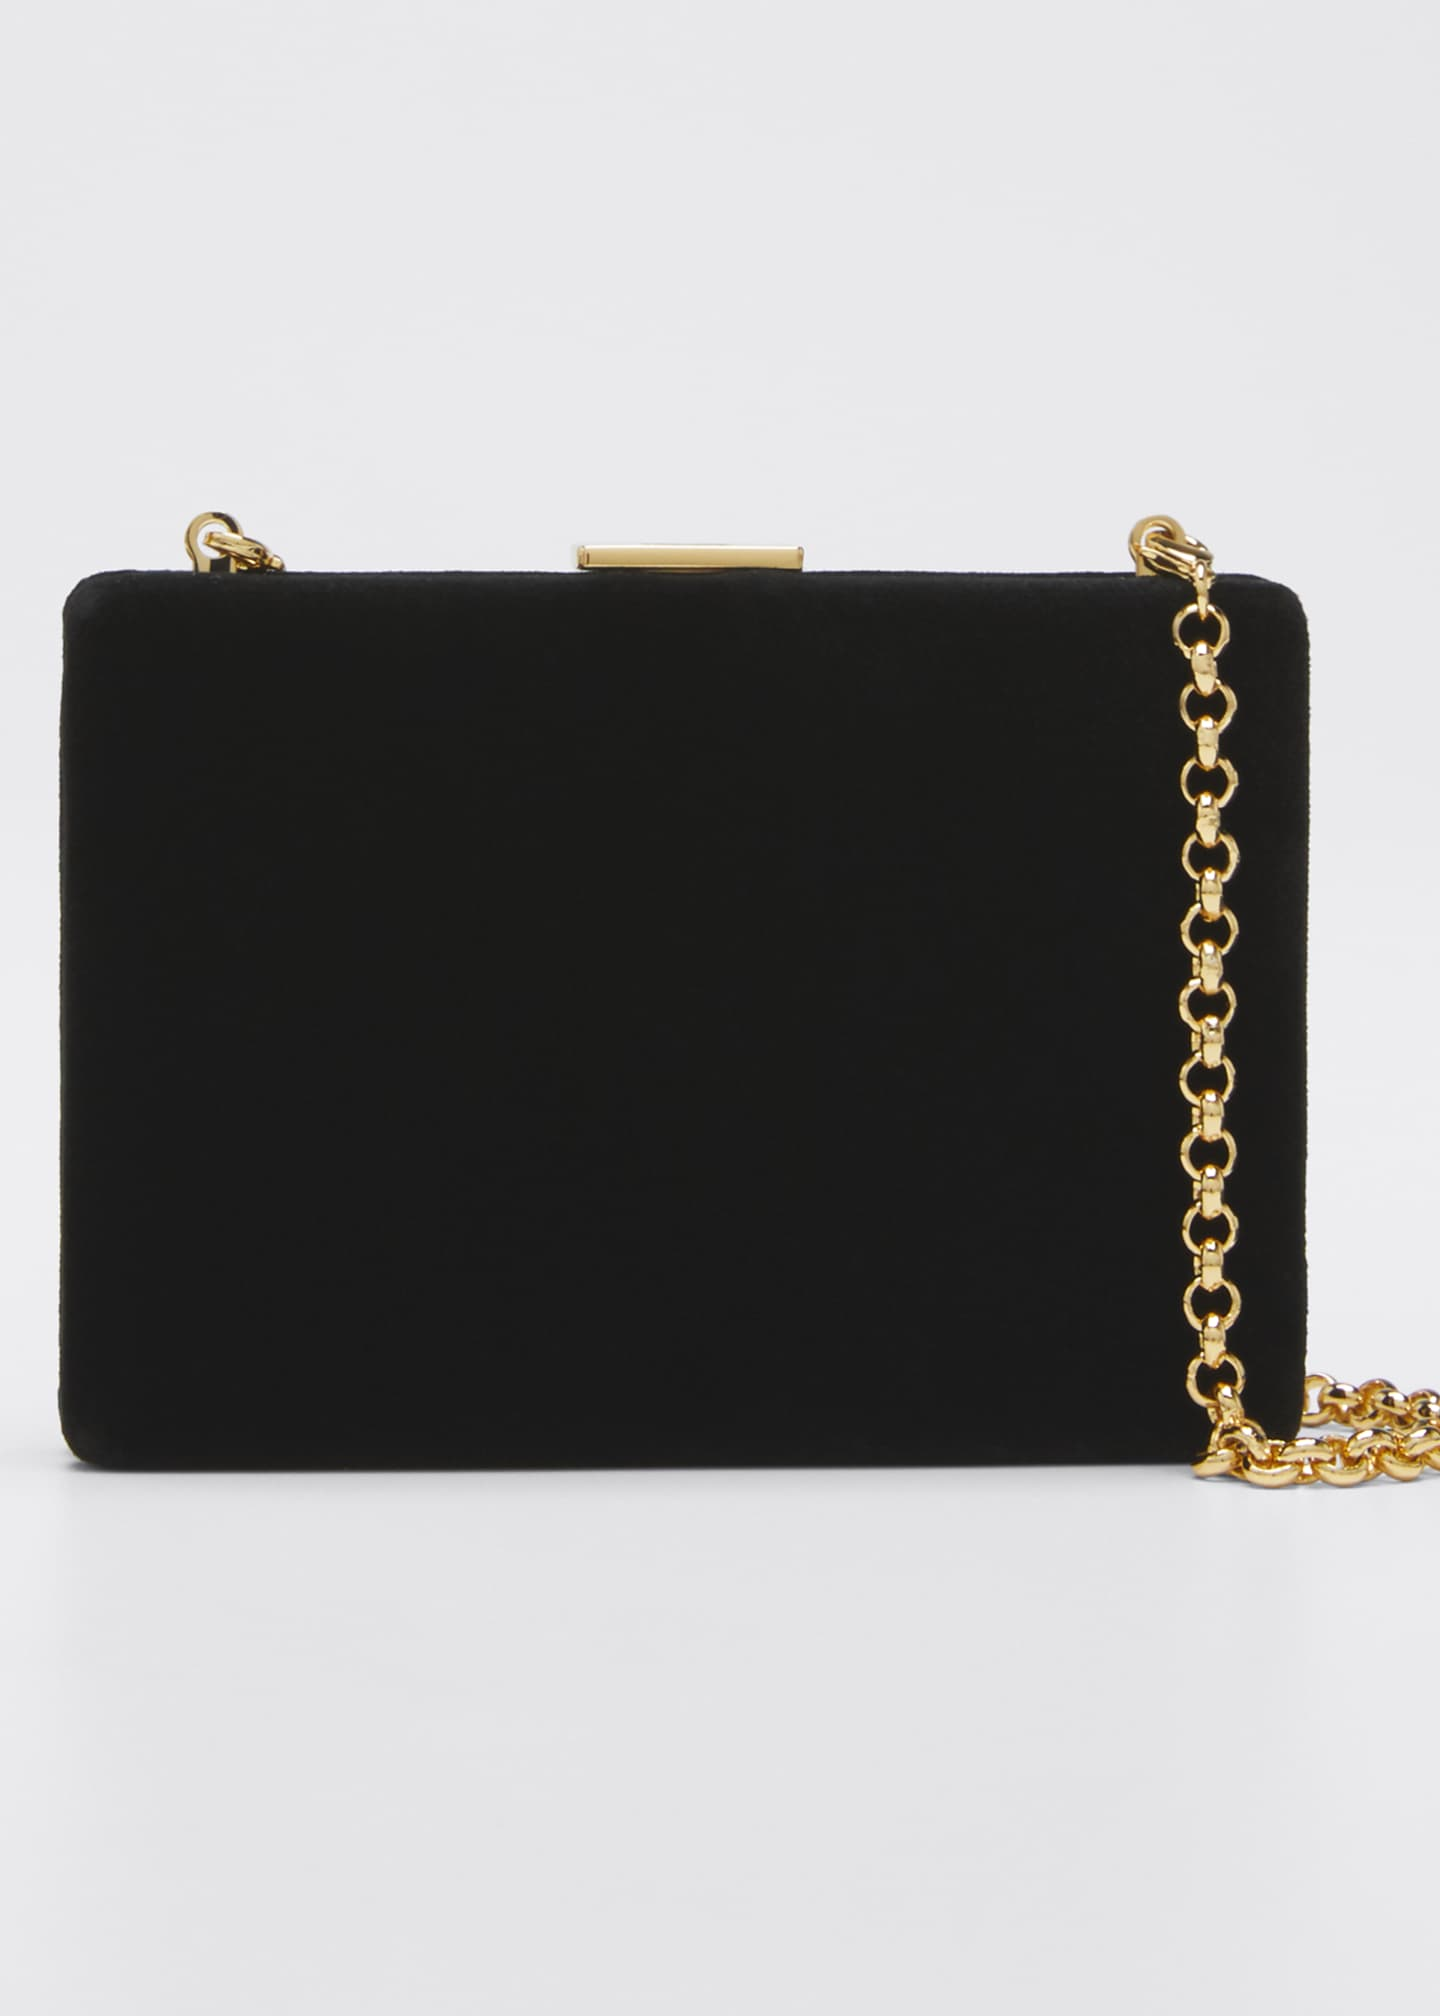 Anya Hindmarch Velvet Card Case/Wallet, Black